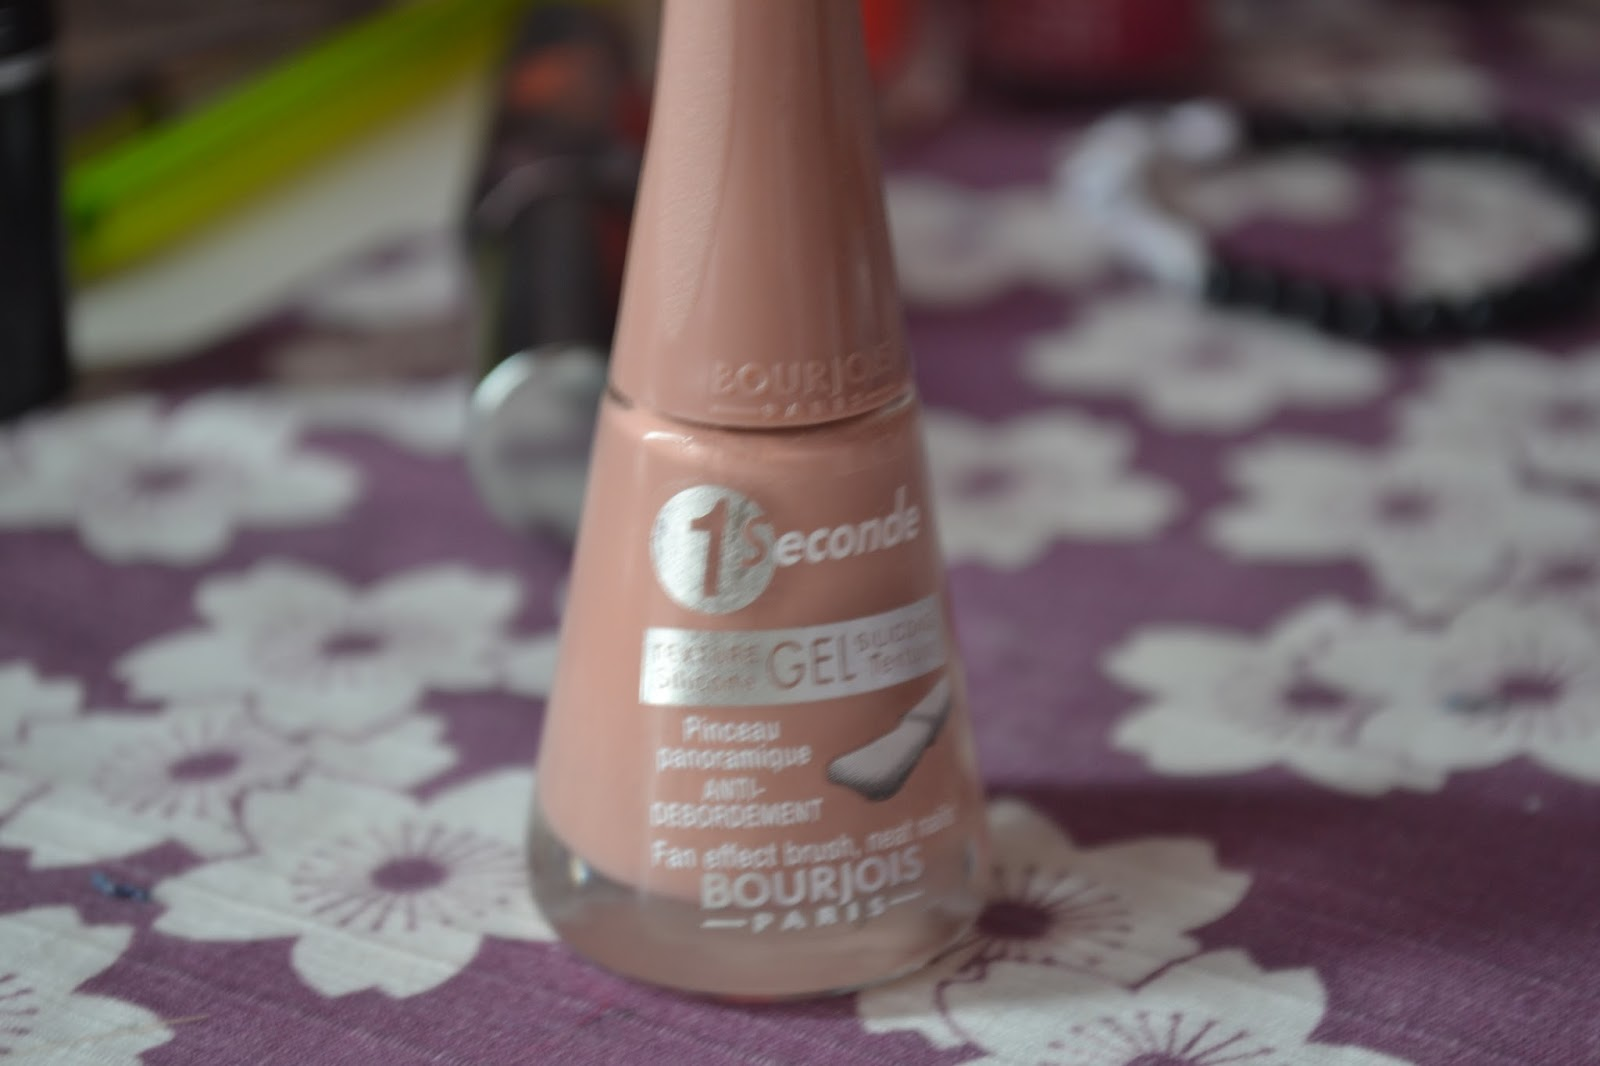 Bourjois Nail Varnish